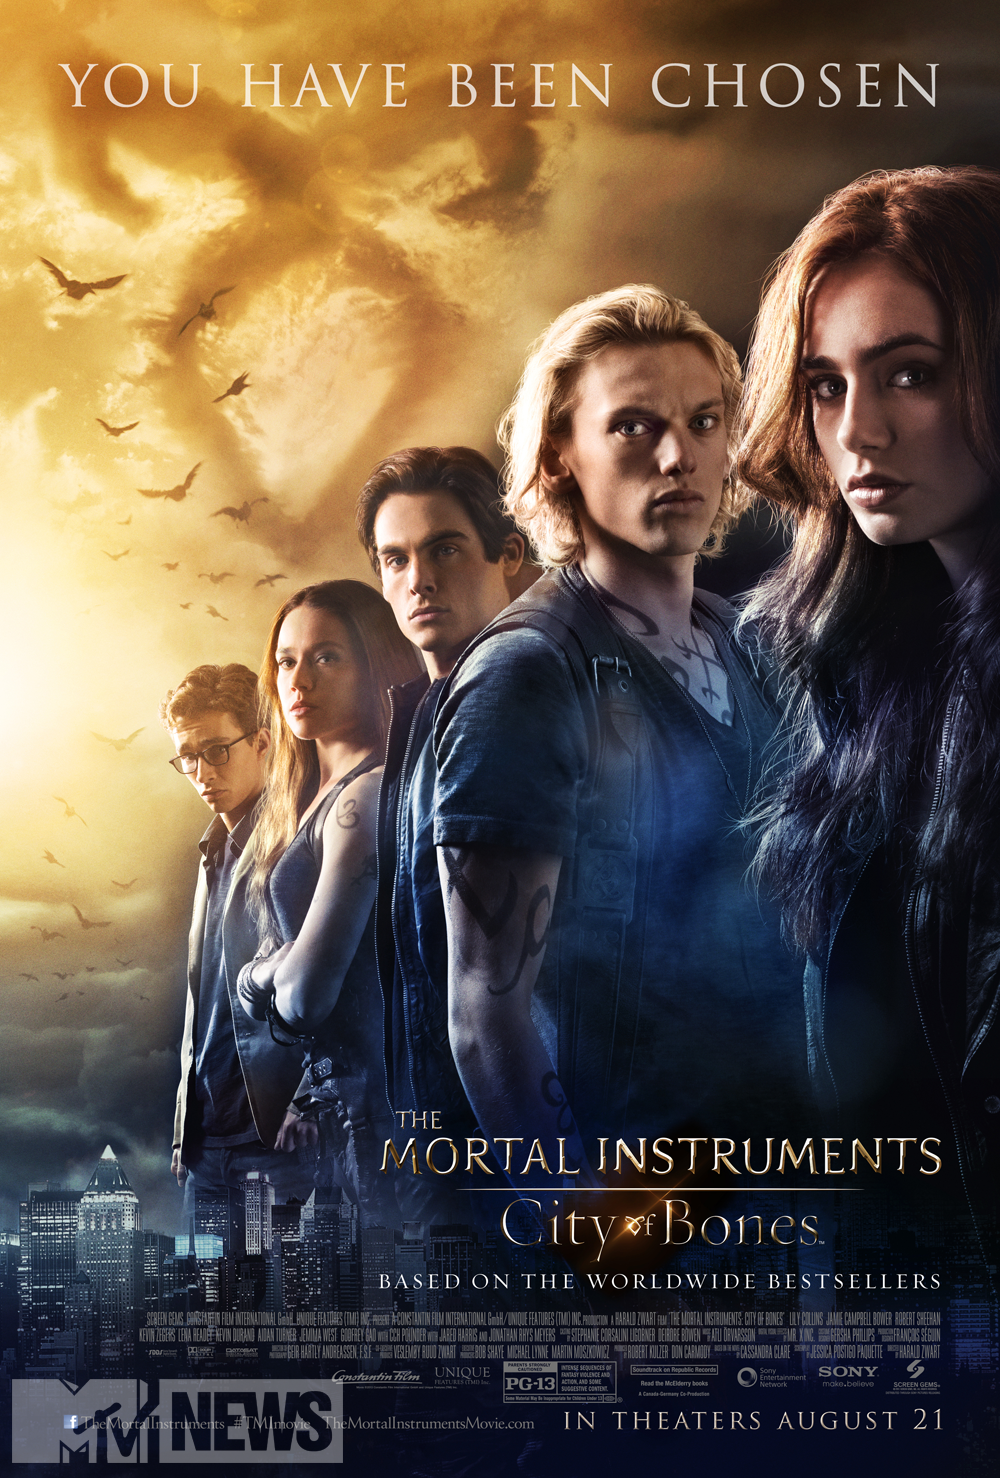 The Mortal Instruments City of Bones-Official Poster Banner PROMO-09JULHO2013